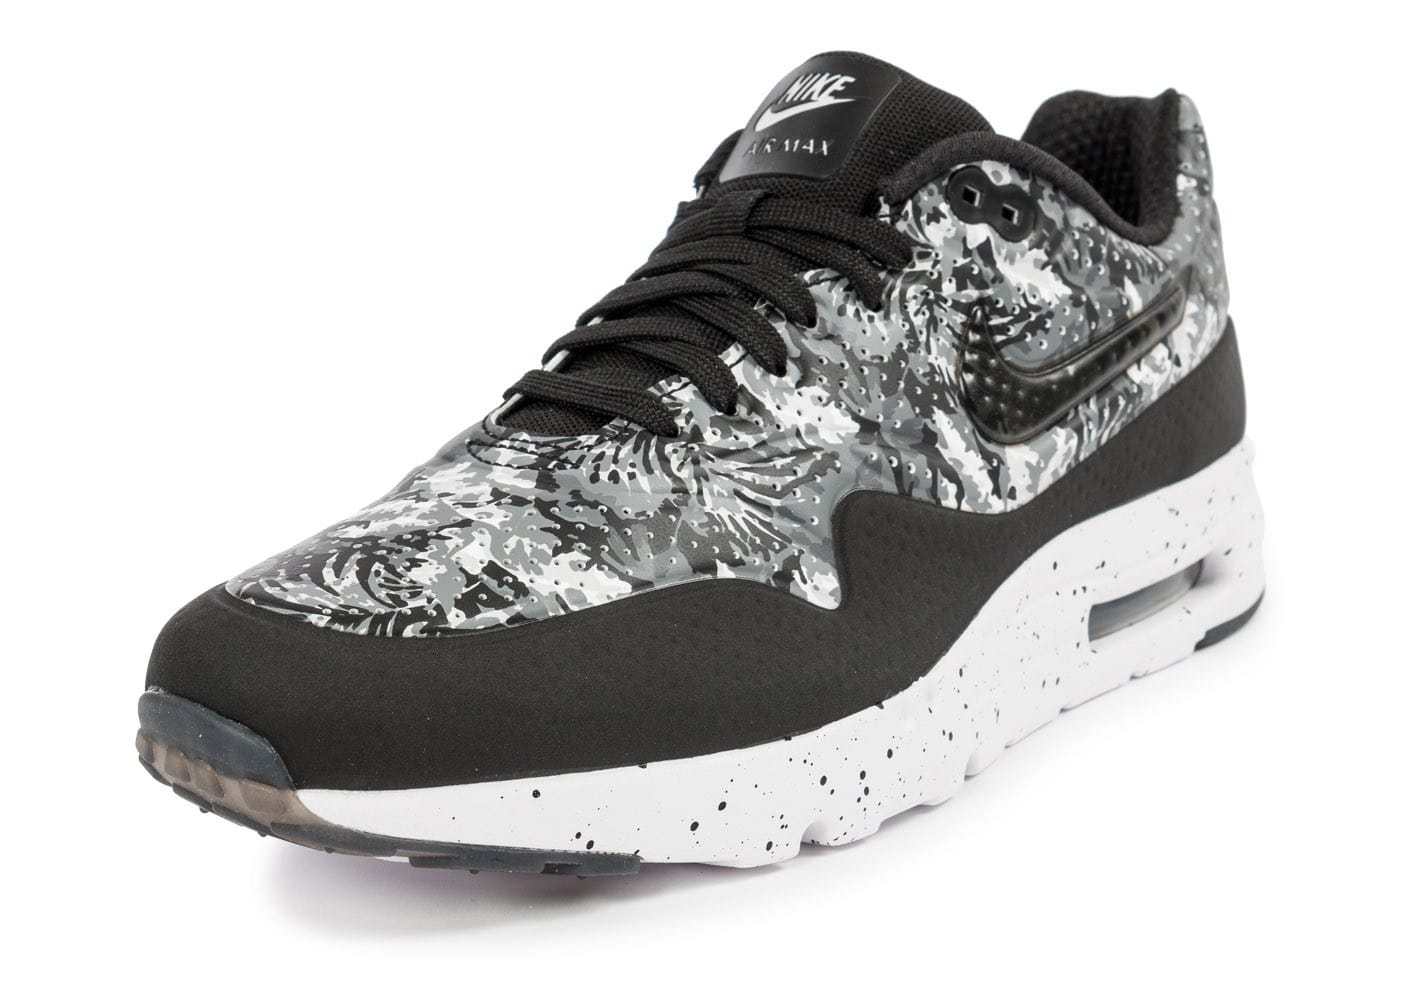 quality design df539 9ab0d Nike Air Max 1 Ultra Moire dark grey - Chaussures Baskets homme ...